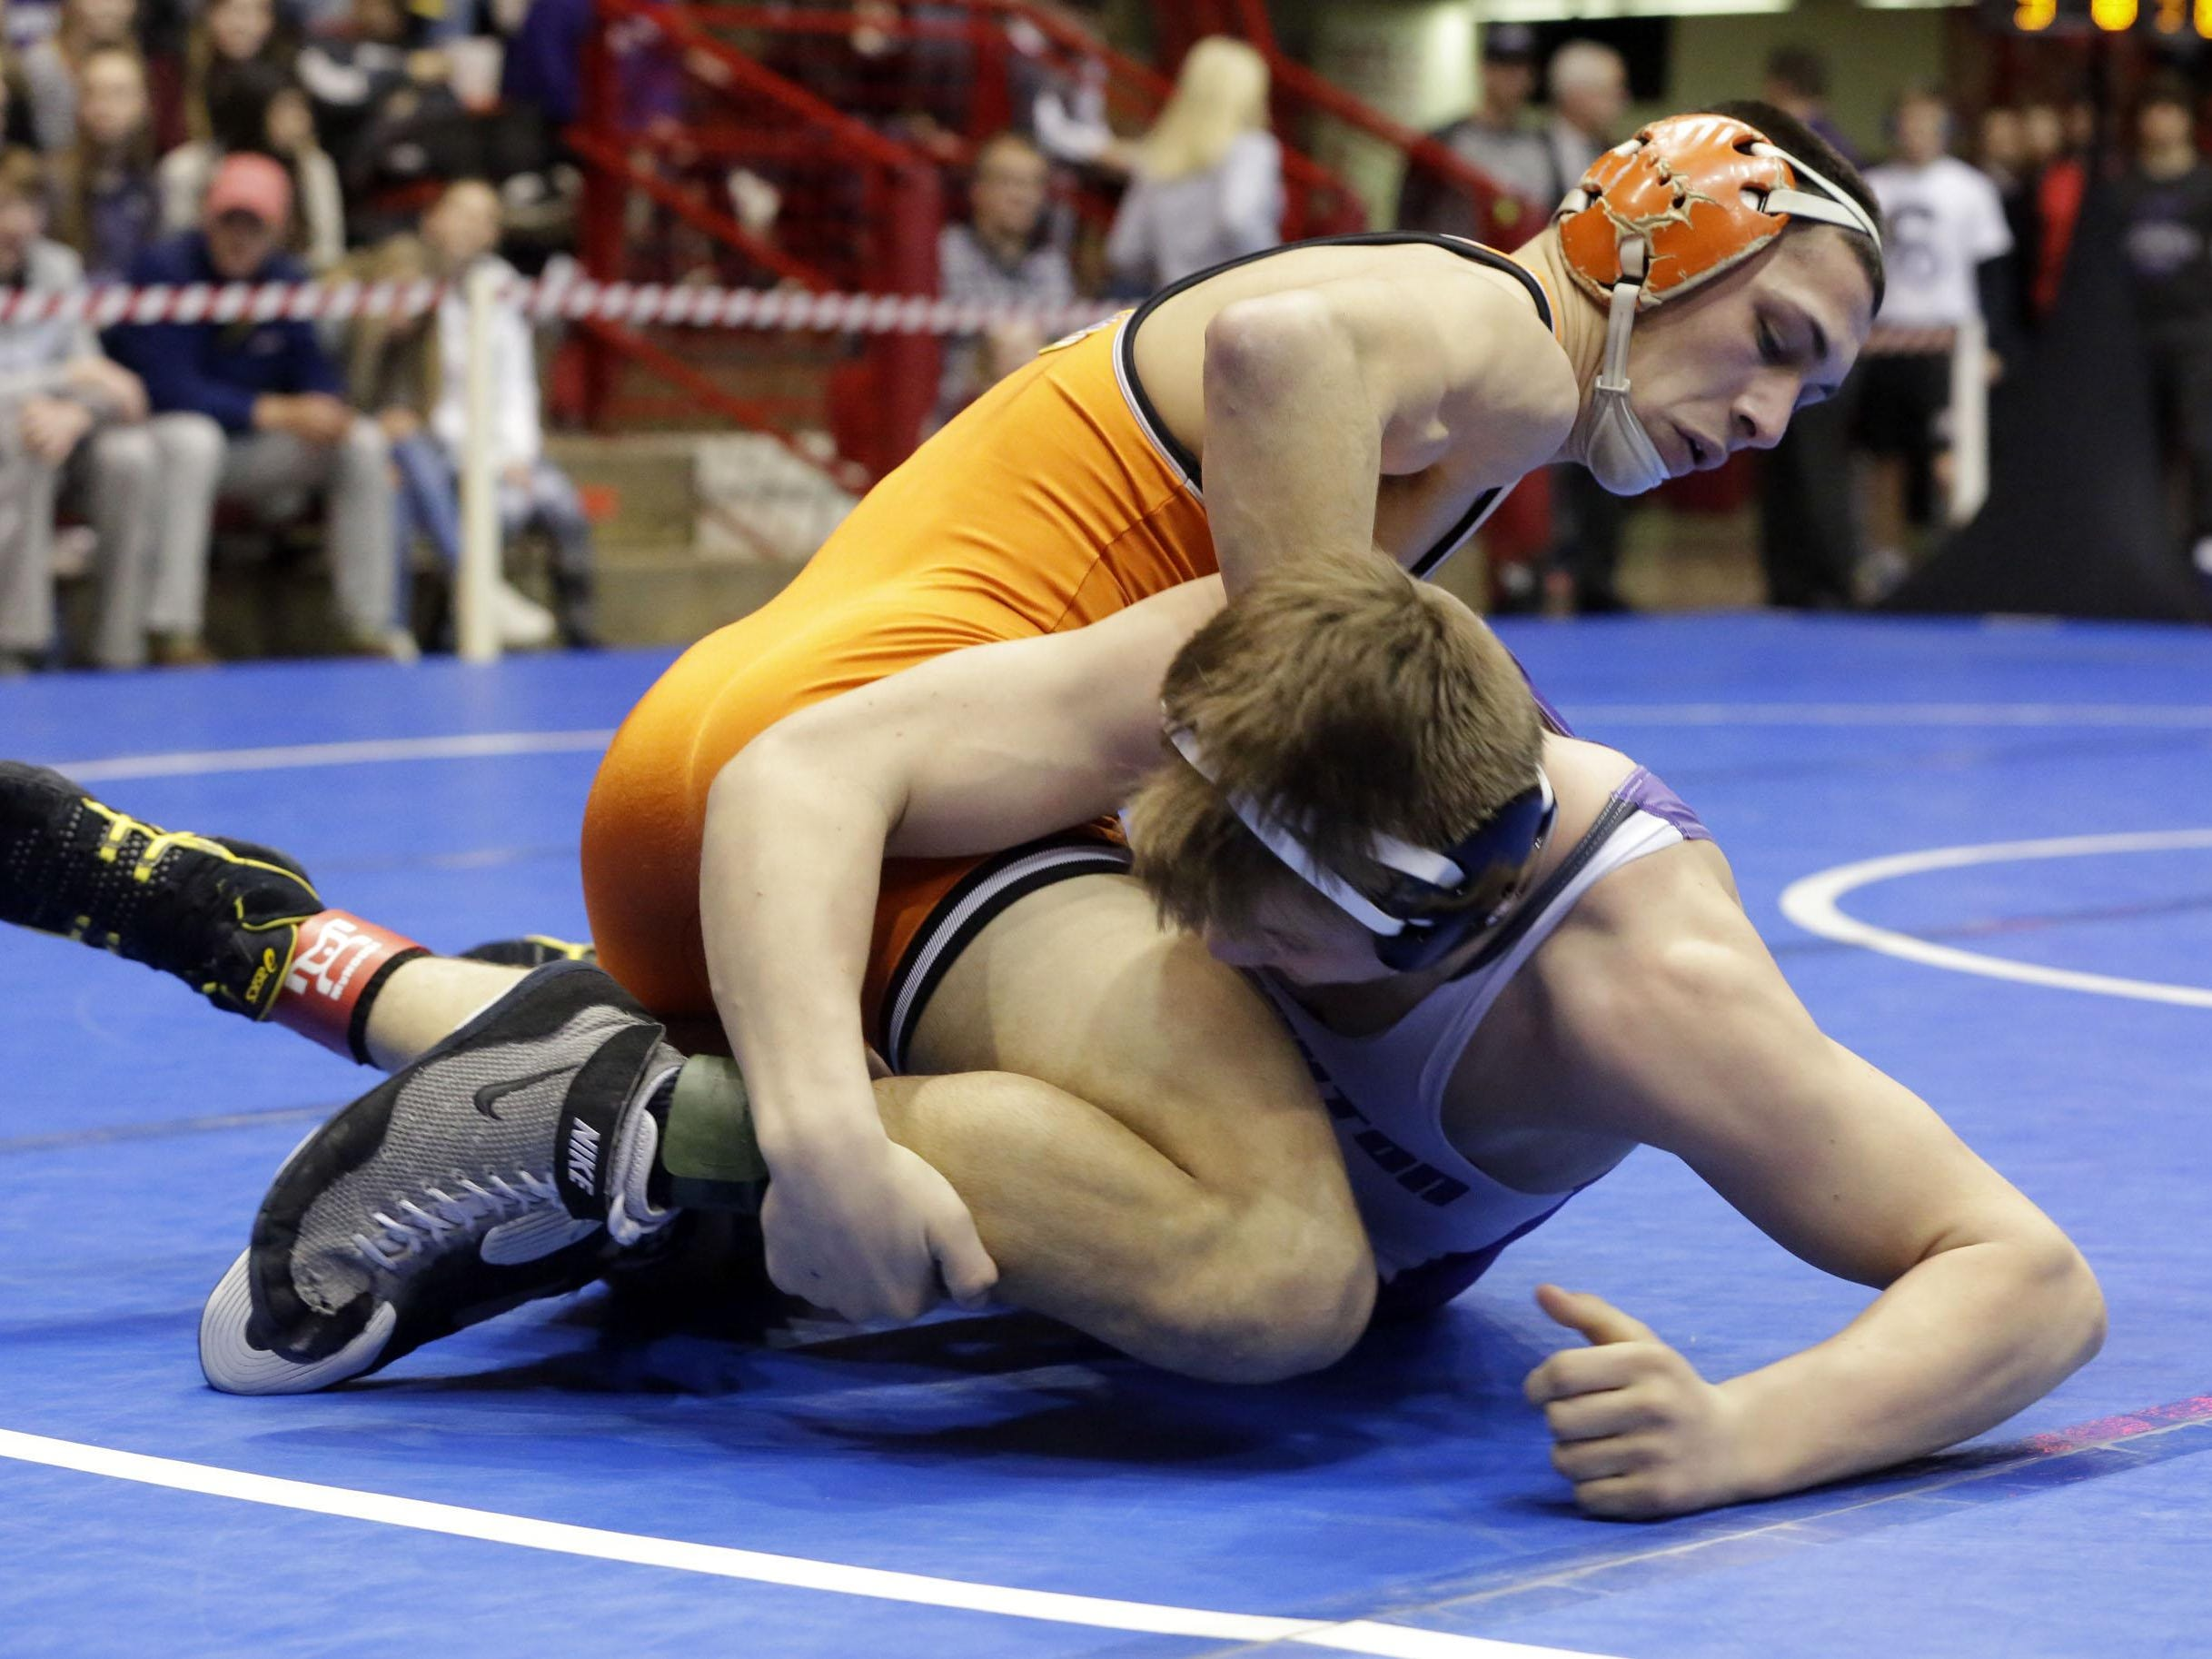 Kaukauna's Trent Leon, top, wrestles Stoughton's Luke Spilde at 138 pounds on Saturday in Madison.